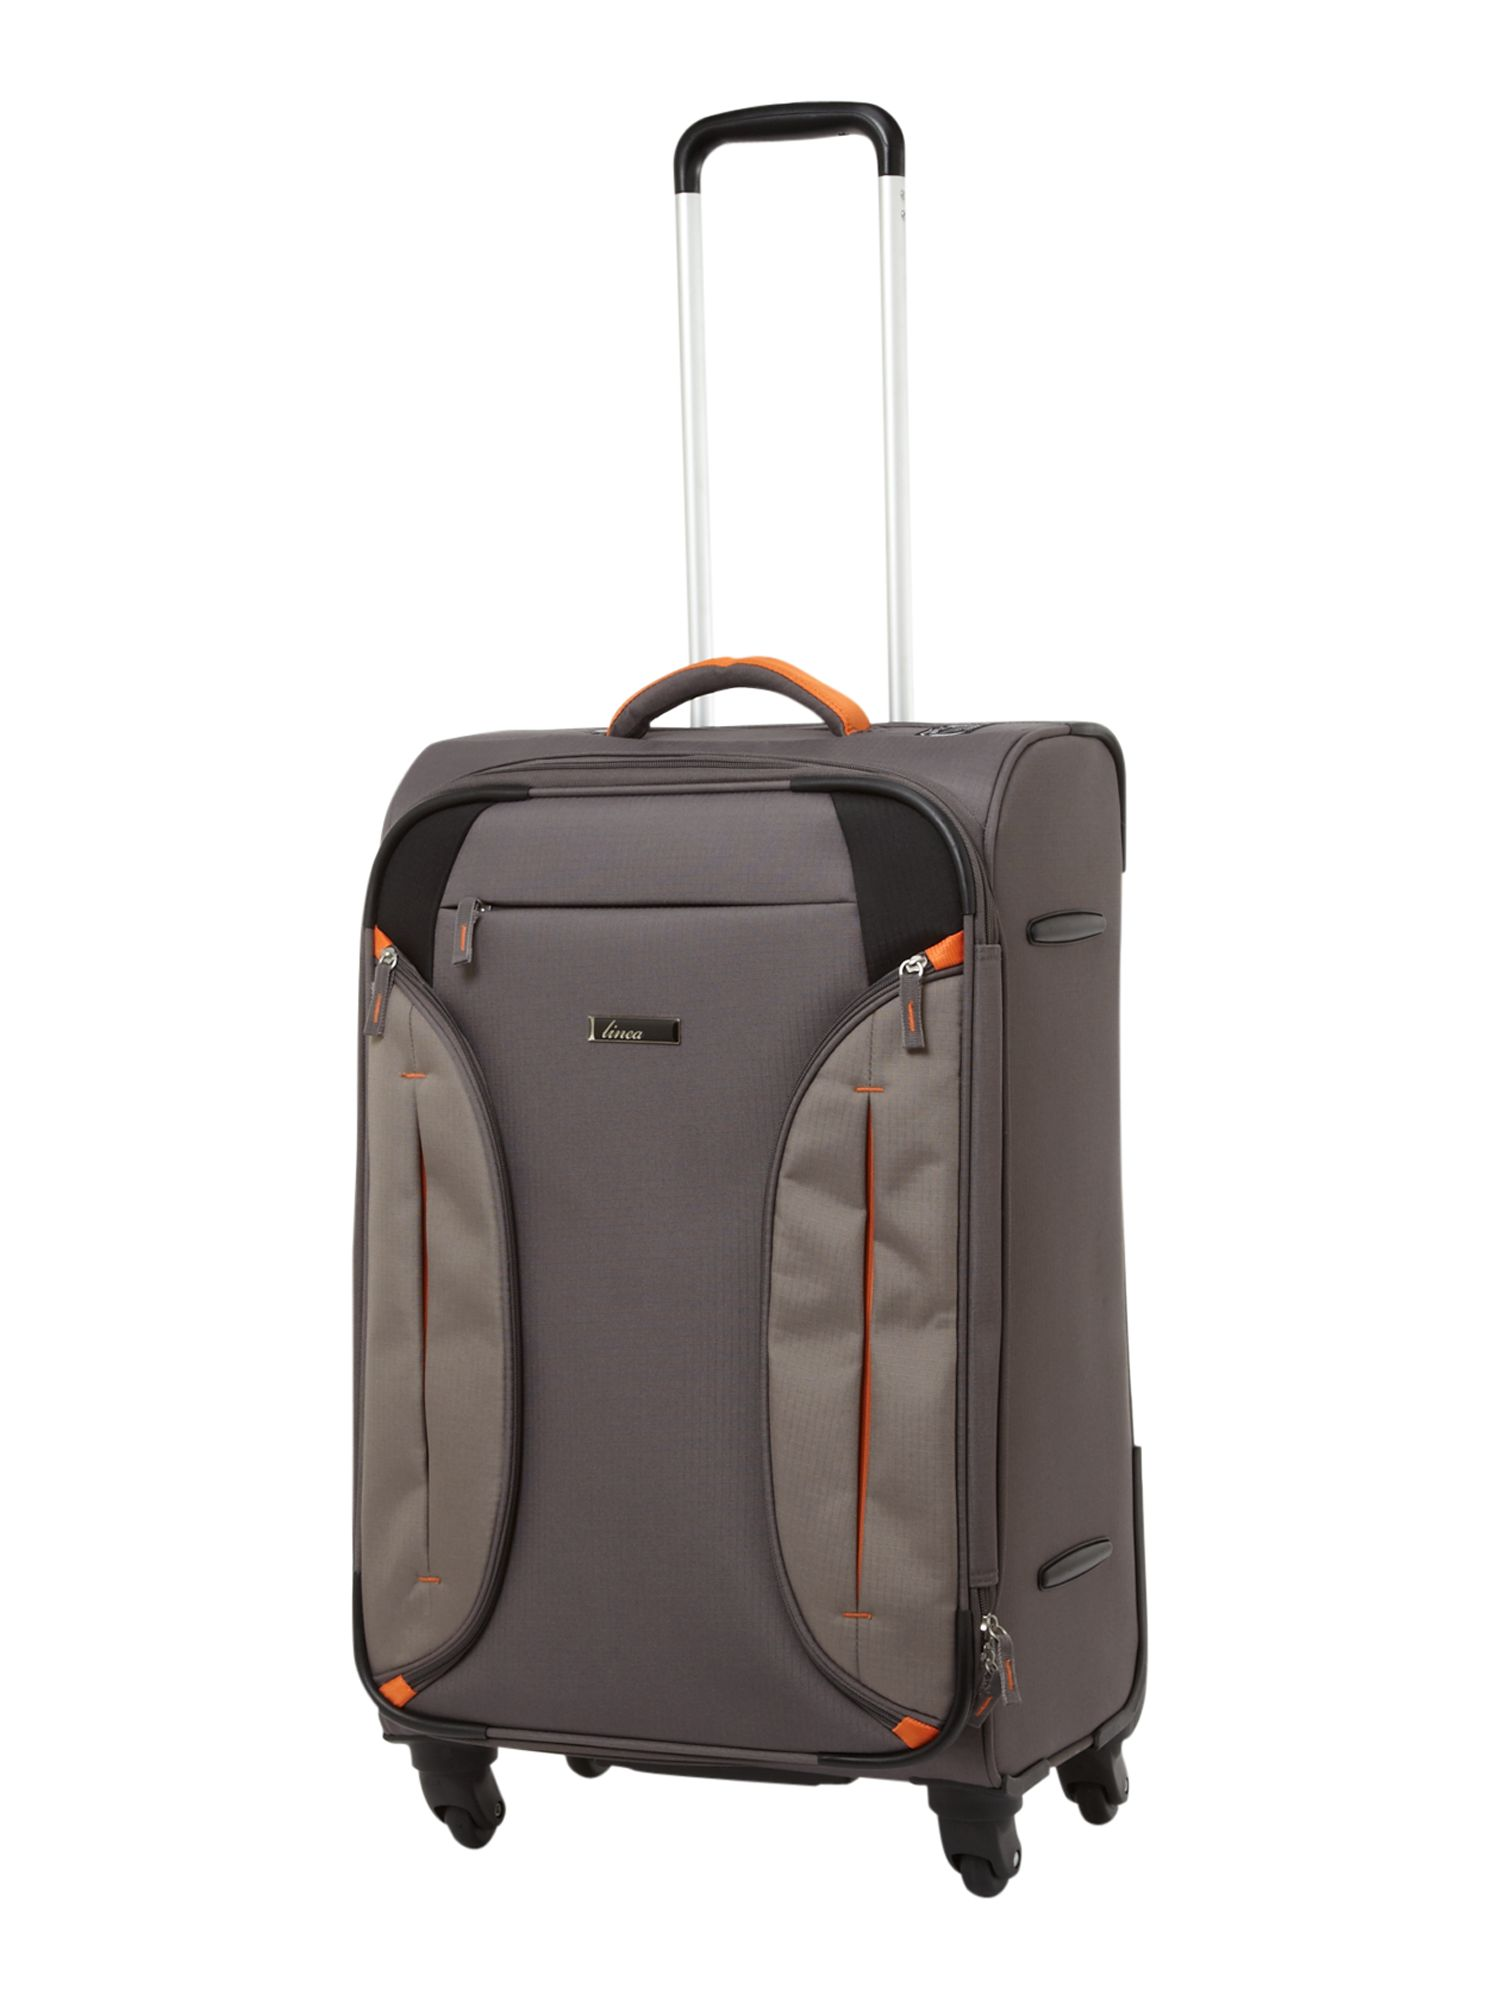 Ultralite 65cm grey framed upright case